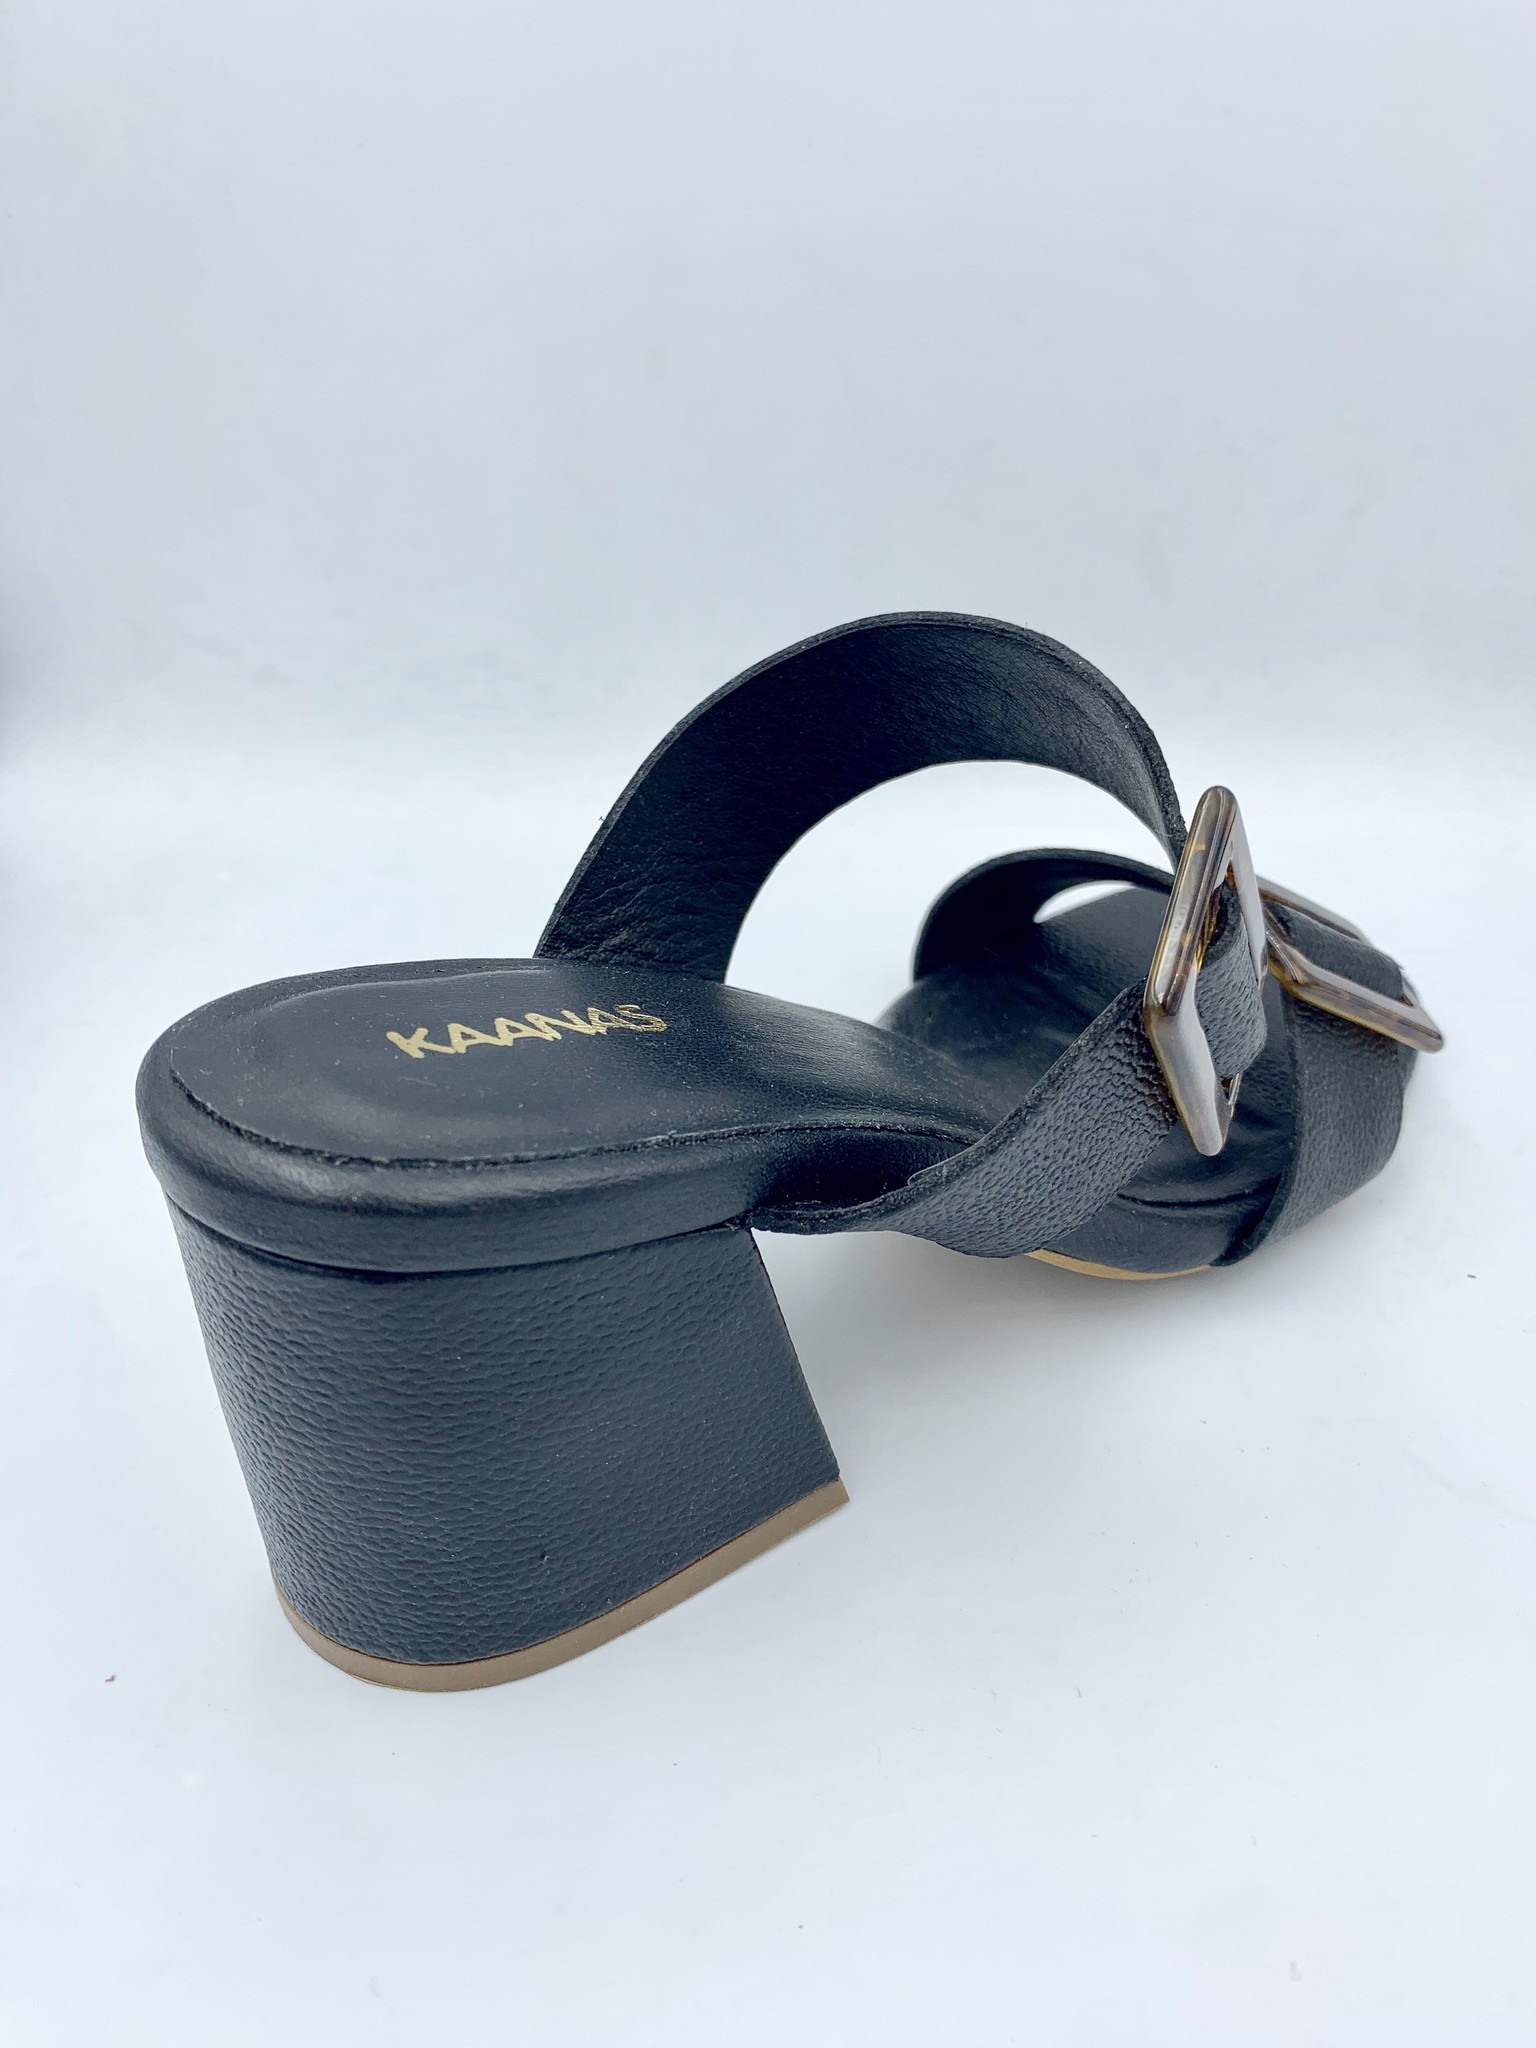 SYROS DOUBLE BUCKLE